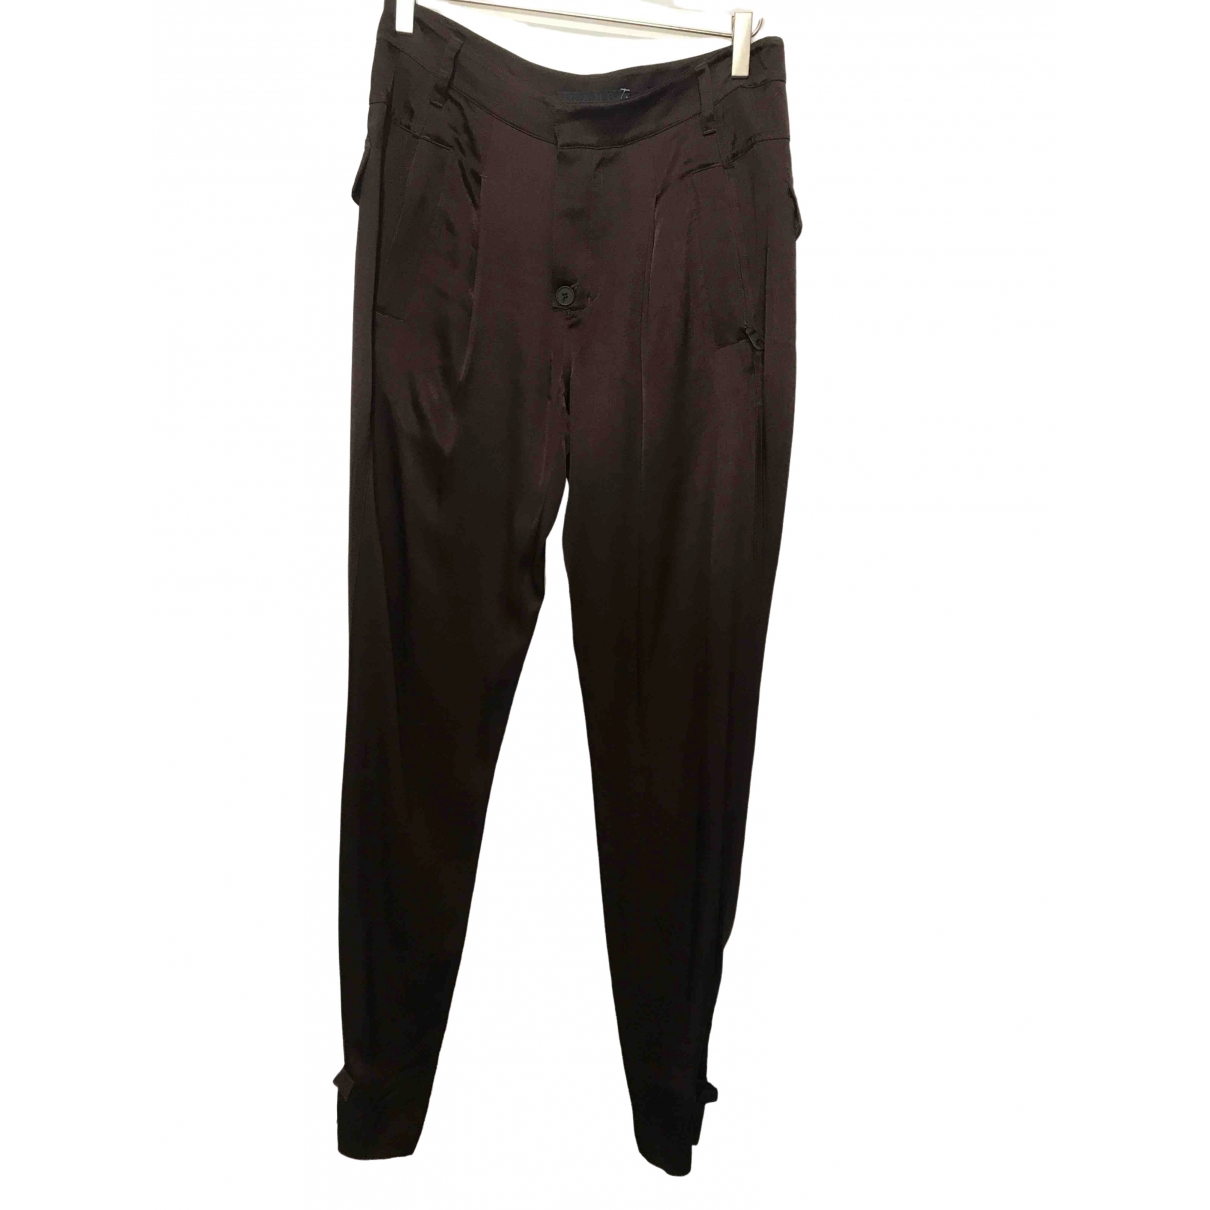 L.a.m.b \N Brown Trousers for Women M International